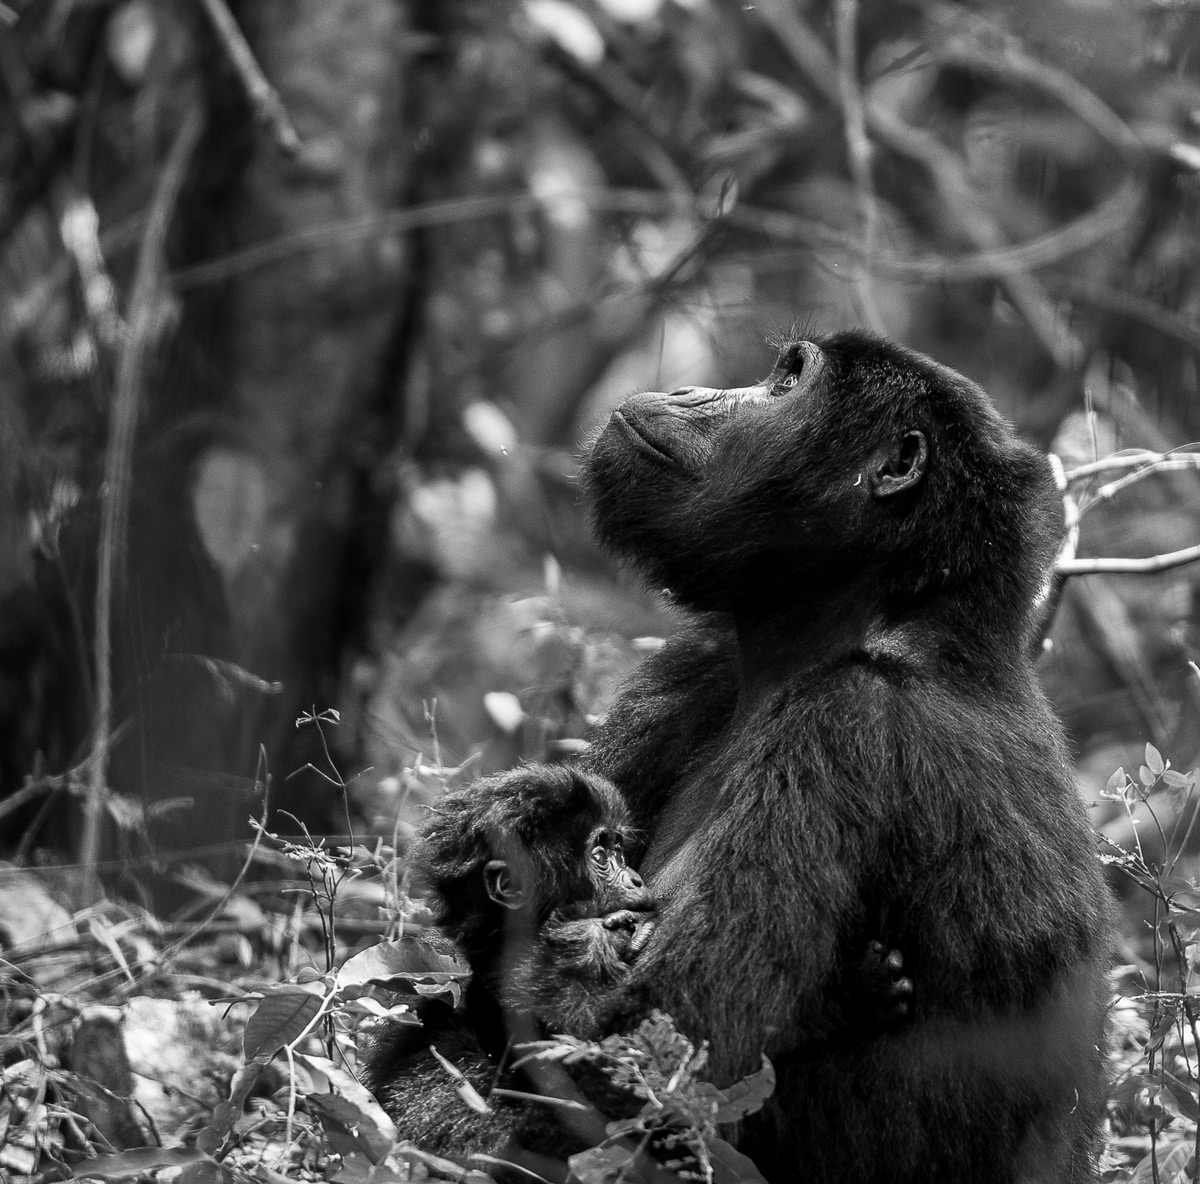 'A moment of thought' – Bwindi Impenetrable National Park, Uganda © Dalida Innes